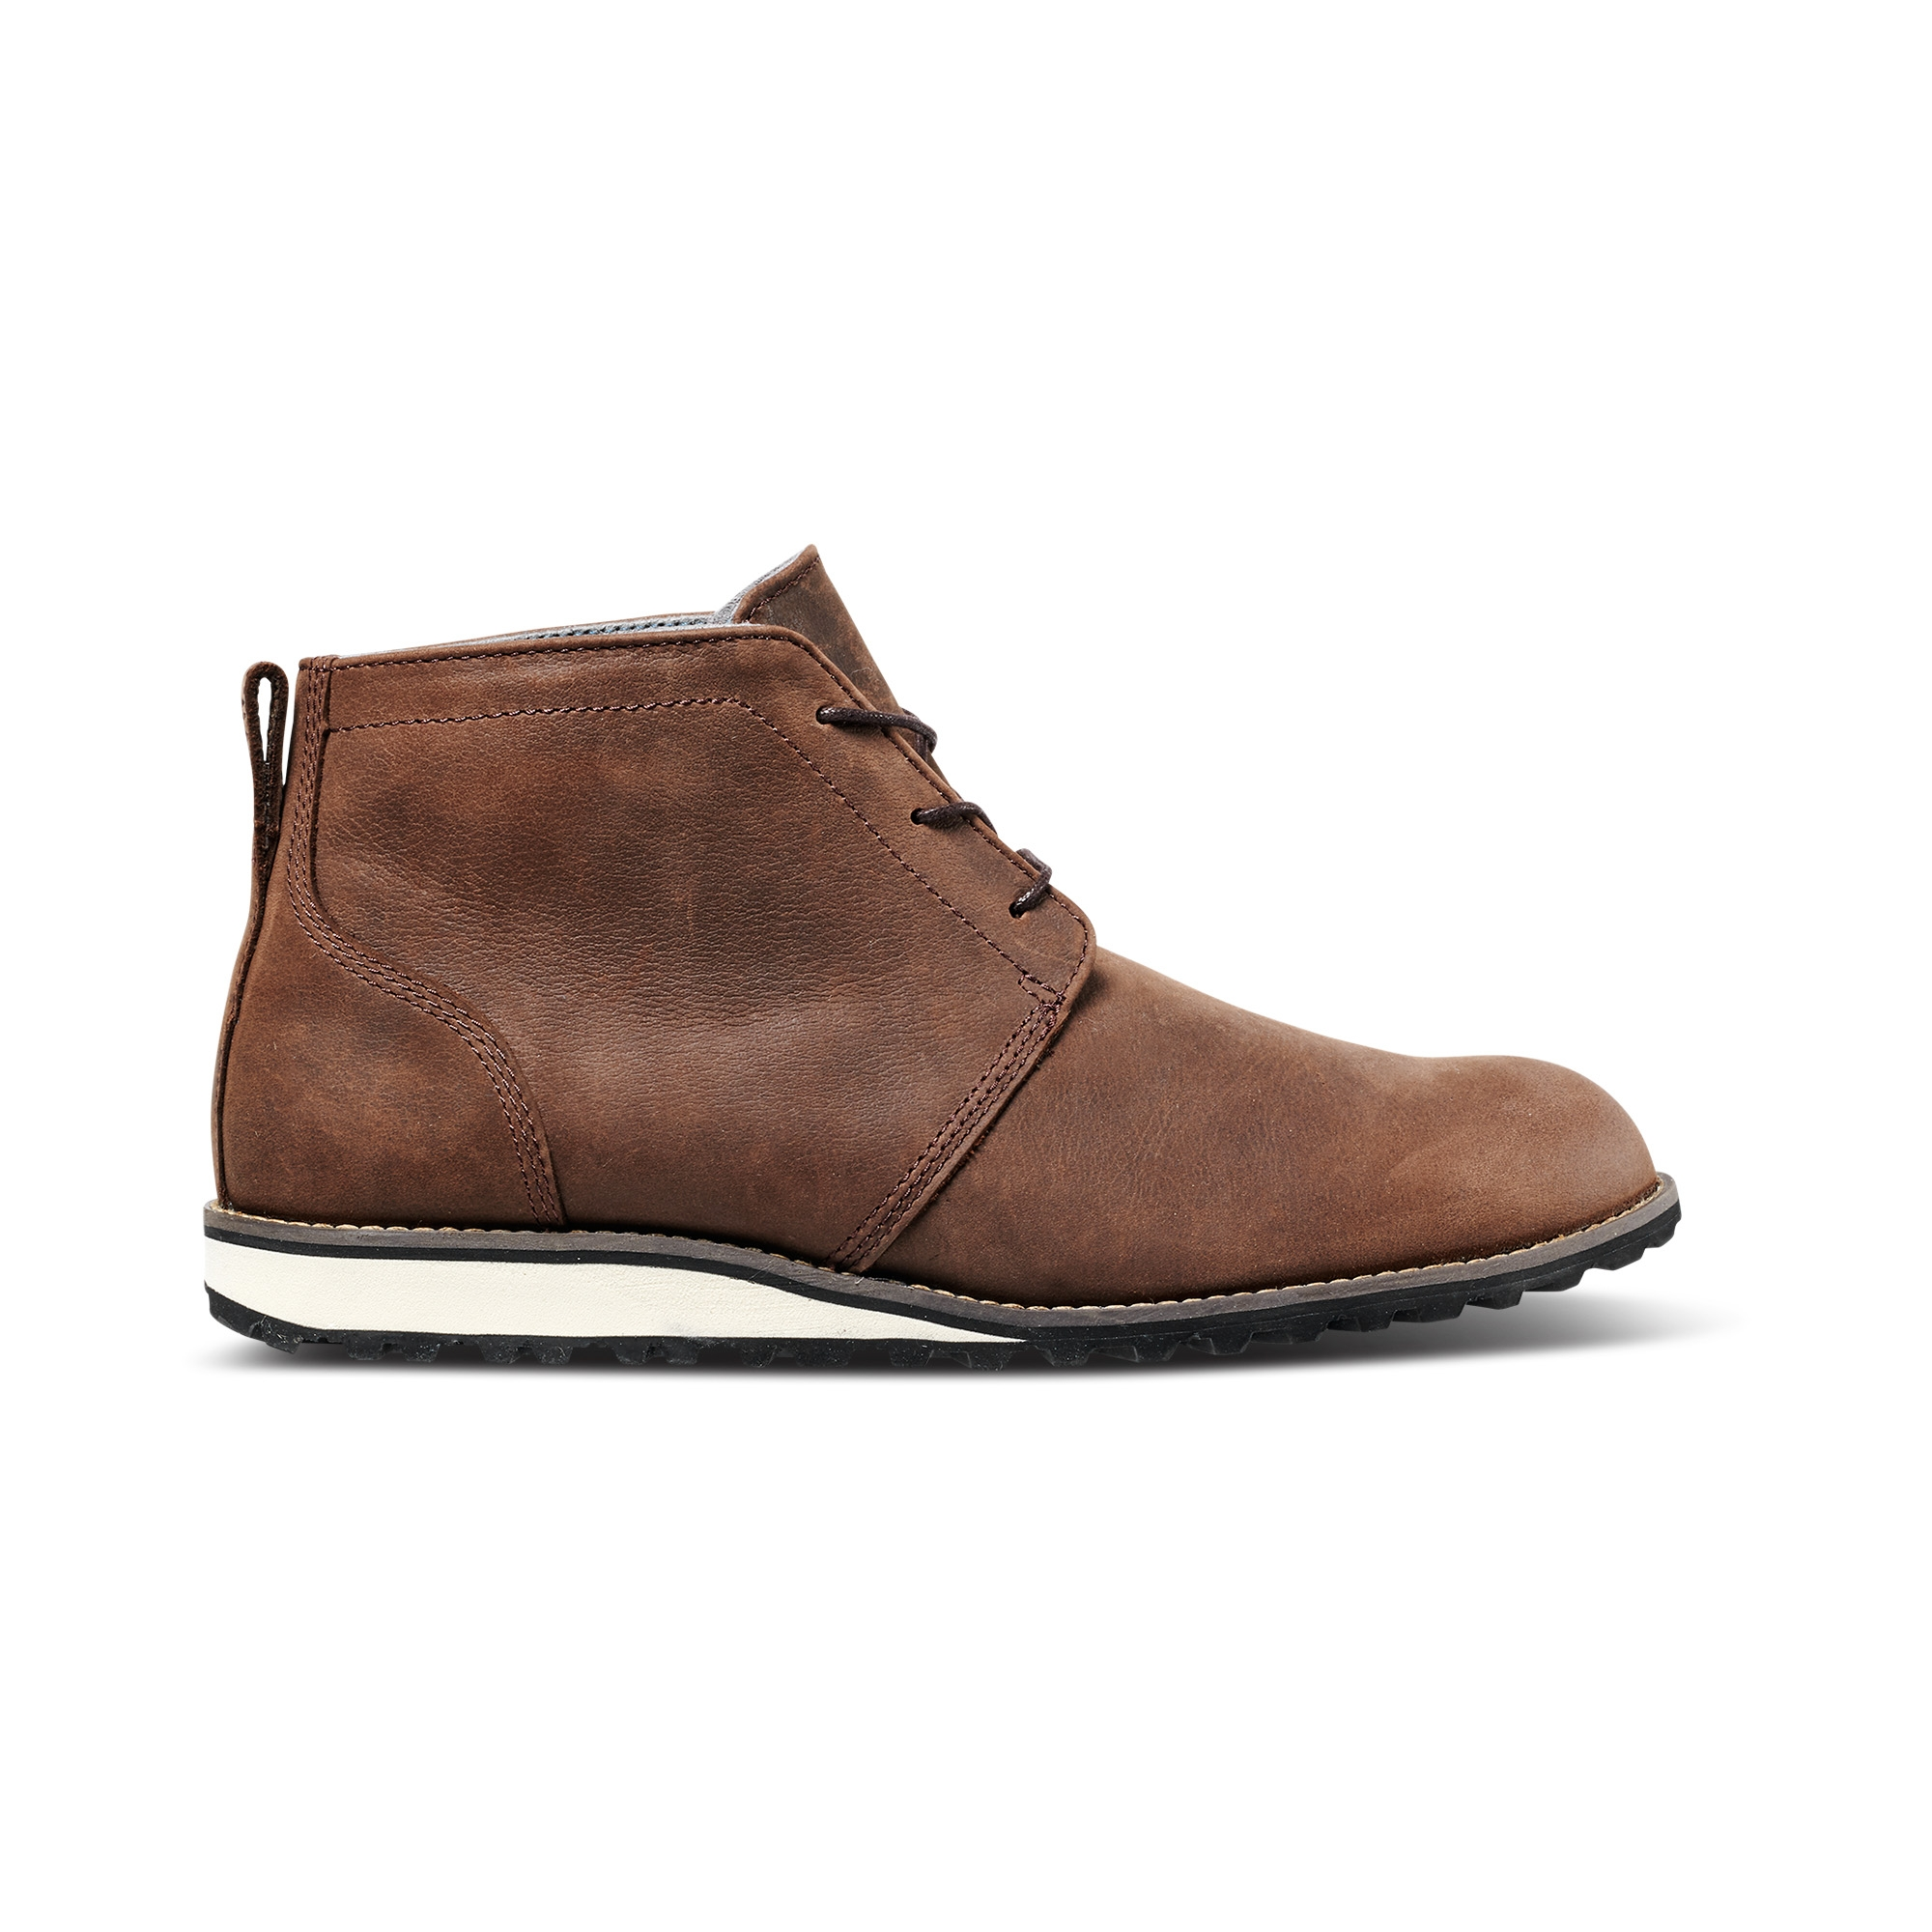 5.11 Tactical Mens Mission Ready Chukka Shoes-5.11 Tactical